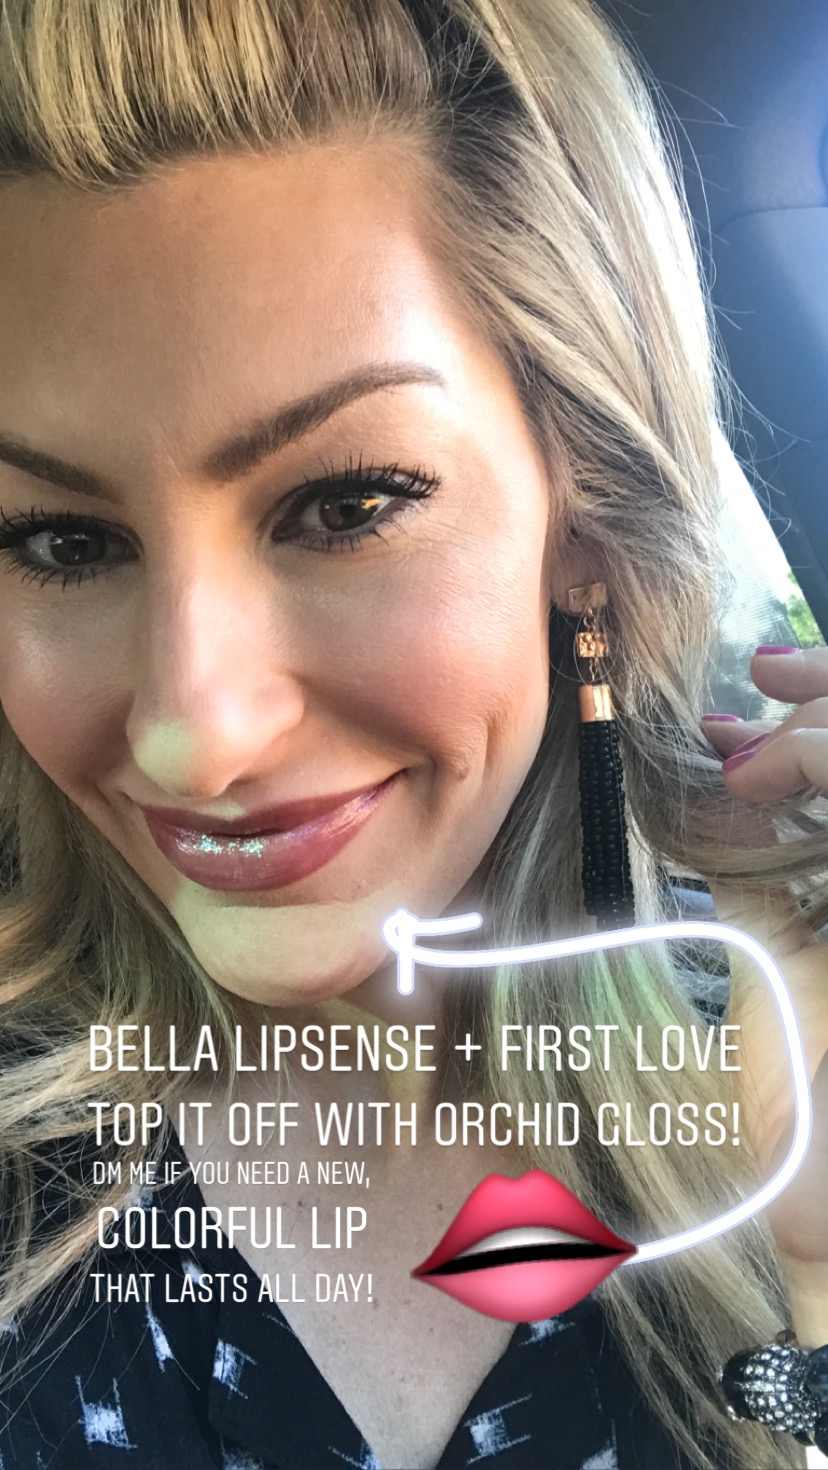 Talk to me about Lipsense, too! I swear by it!